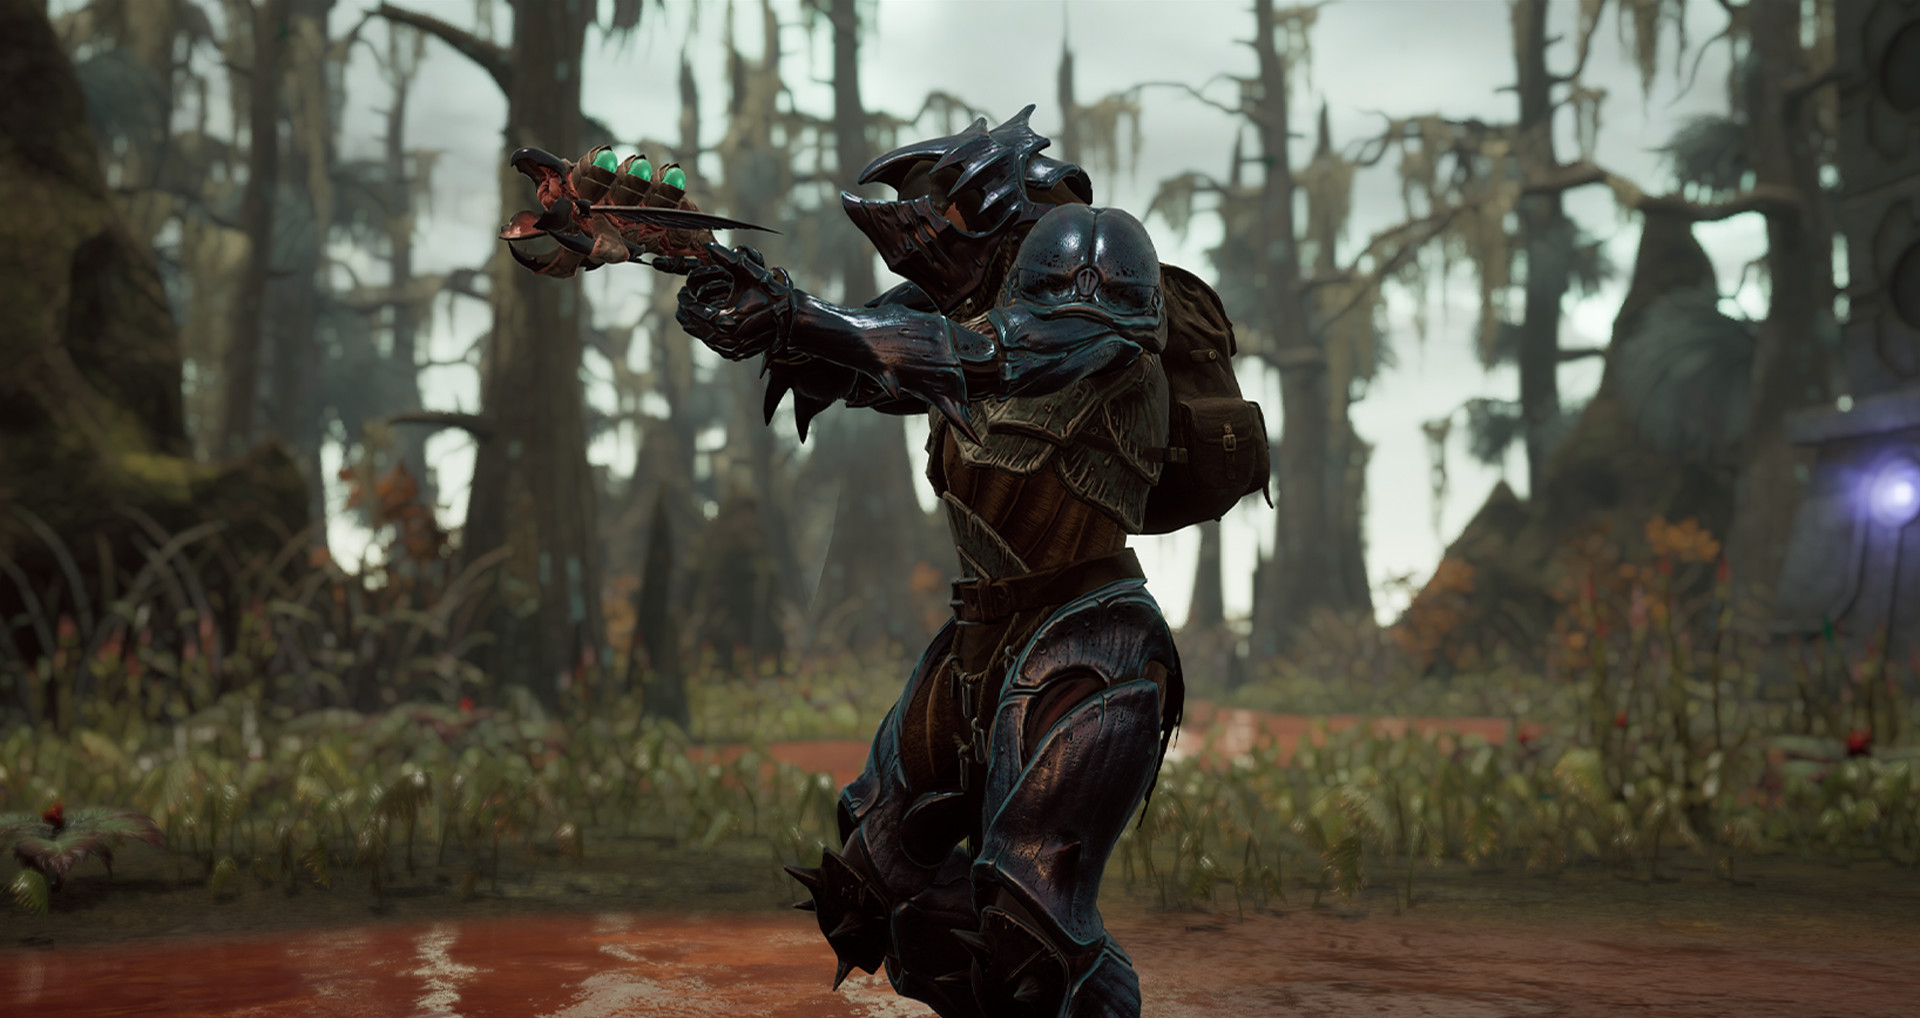 Remnant character aiming a pistol type weapon in a swamp